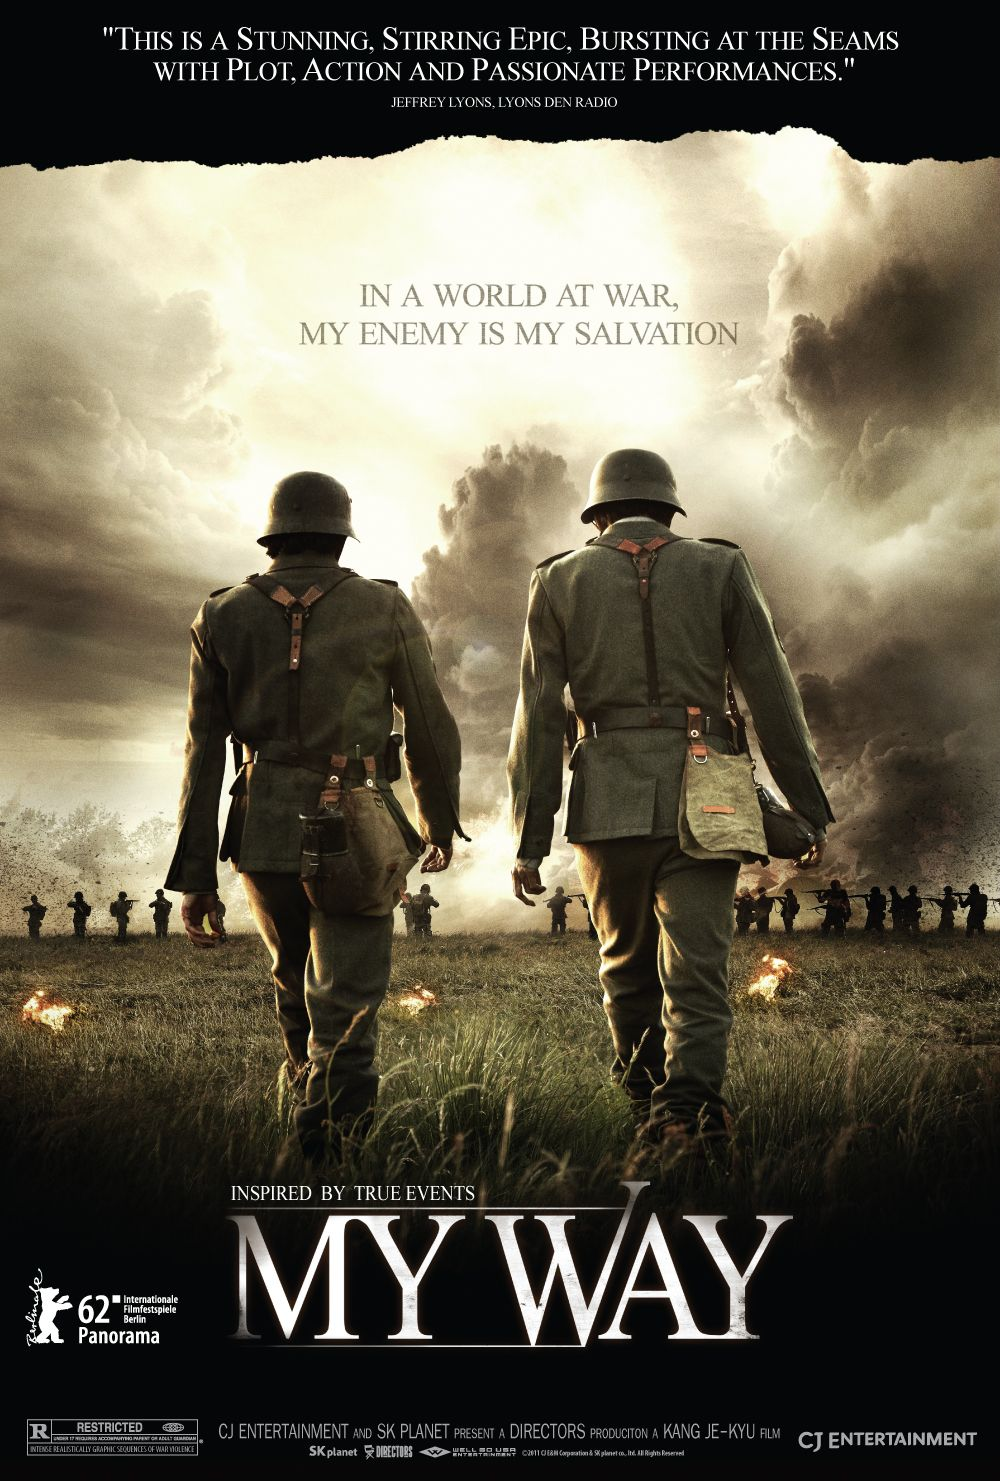 This factbased wartime drama follows two young men, one